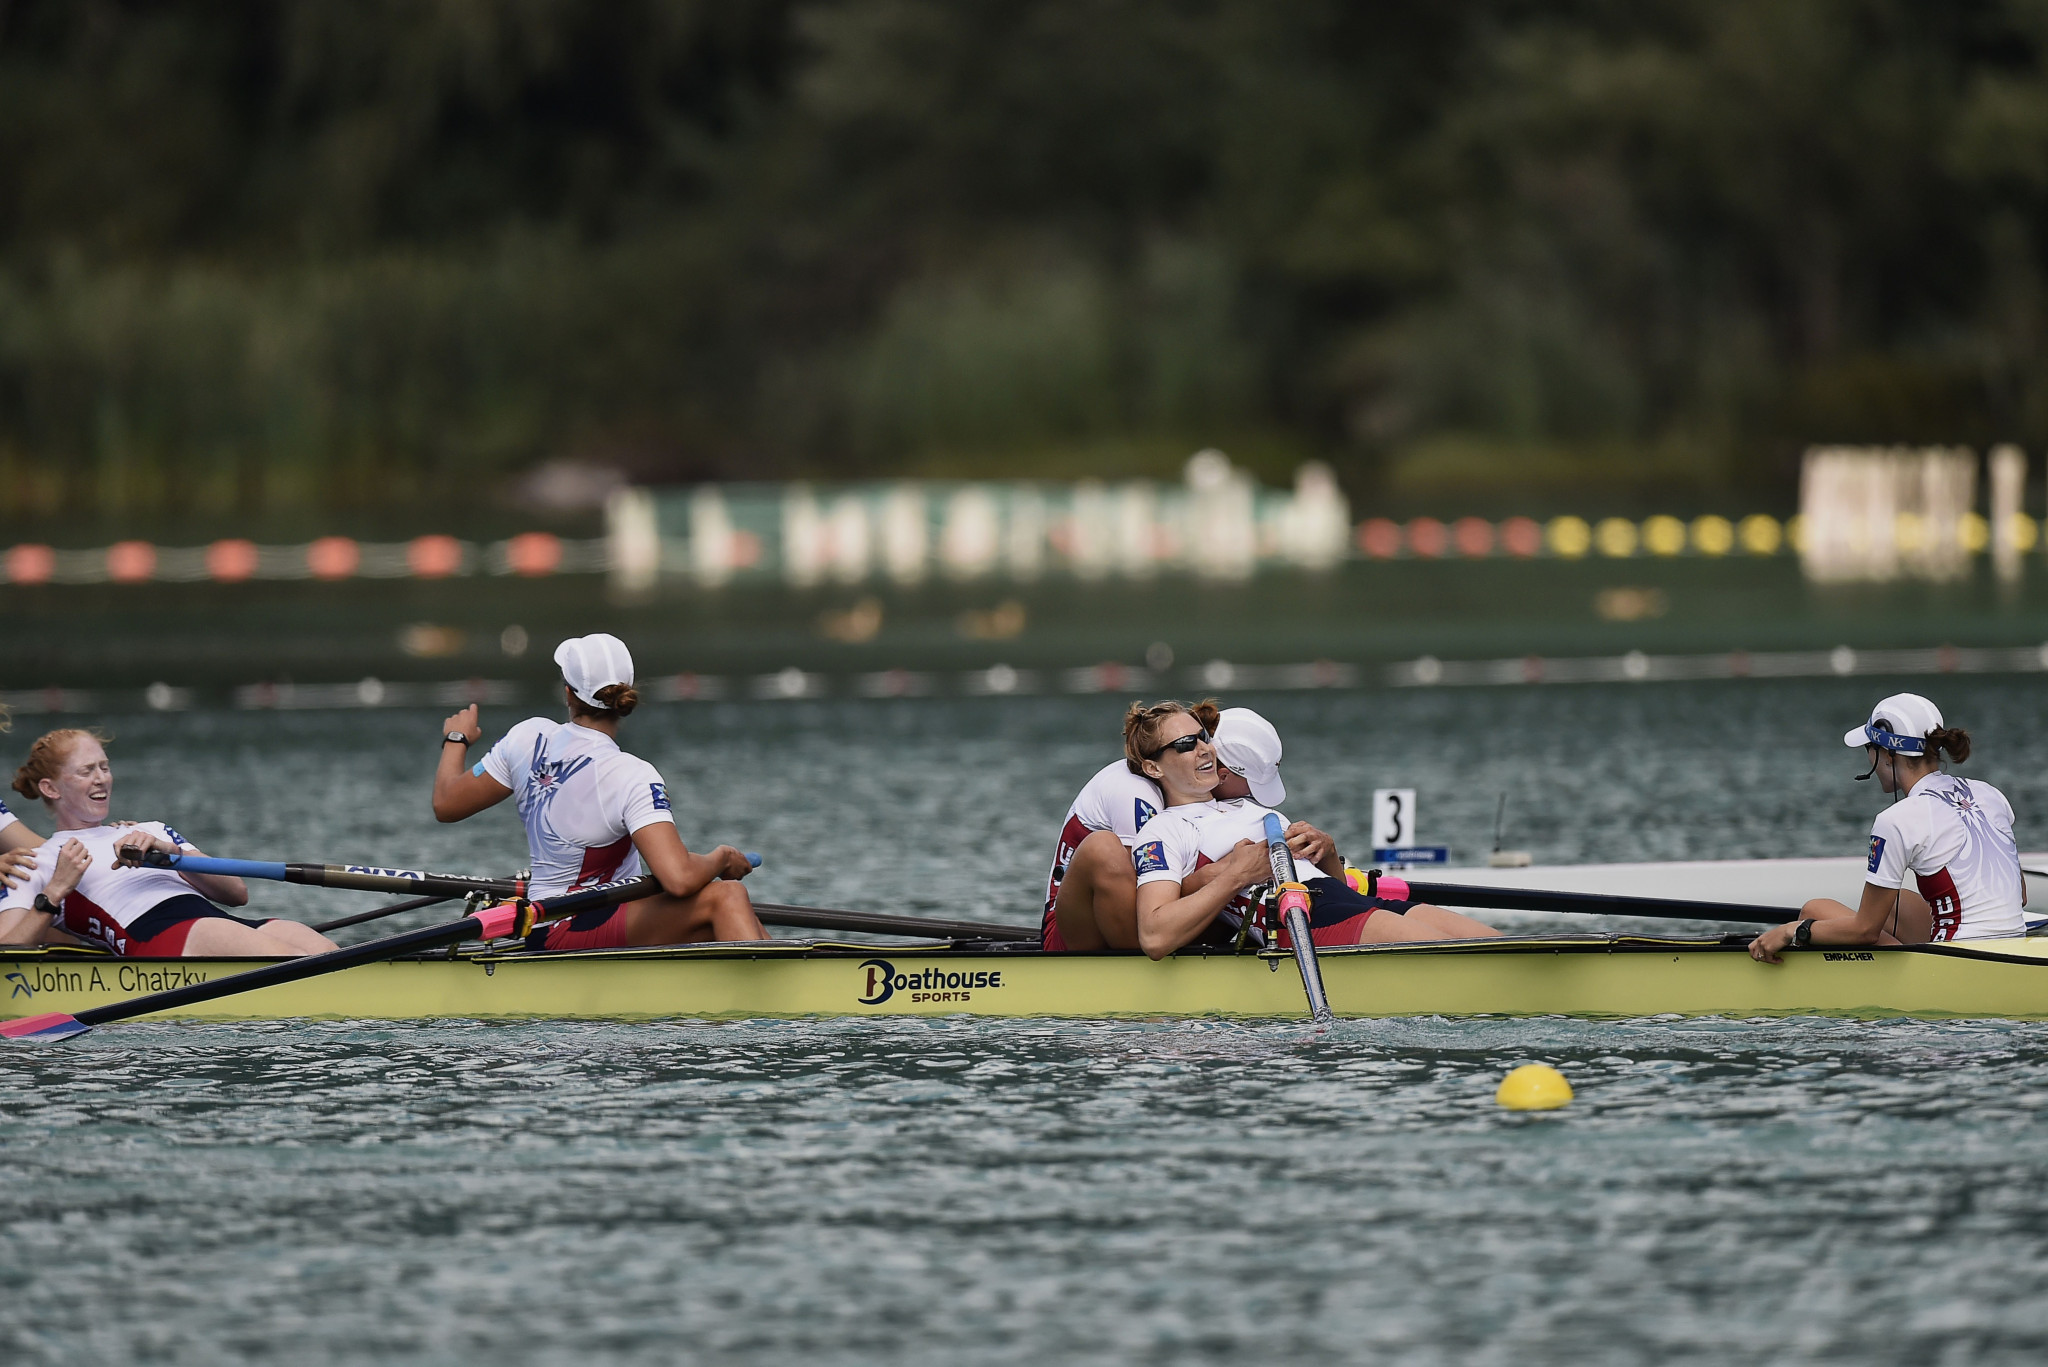 Belgrade, Poznan and Trakai in contention to host 2023 World Rowing Championships